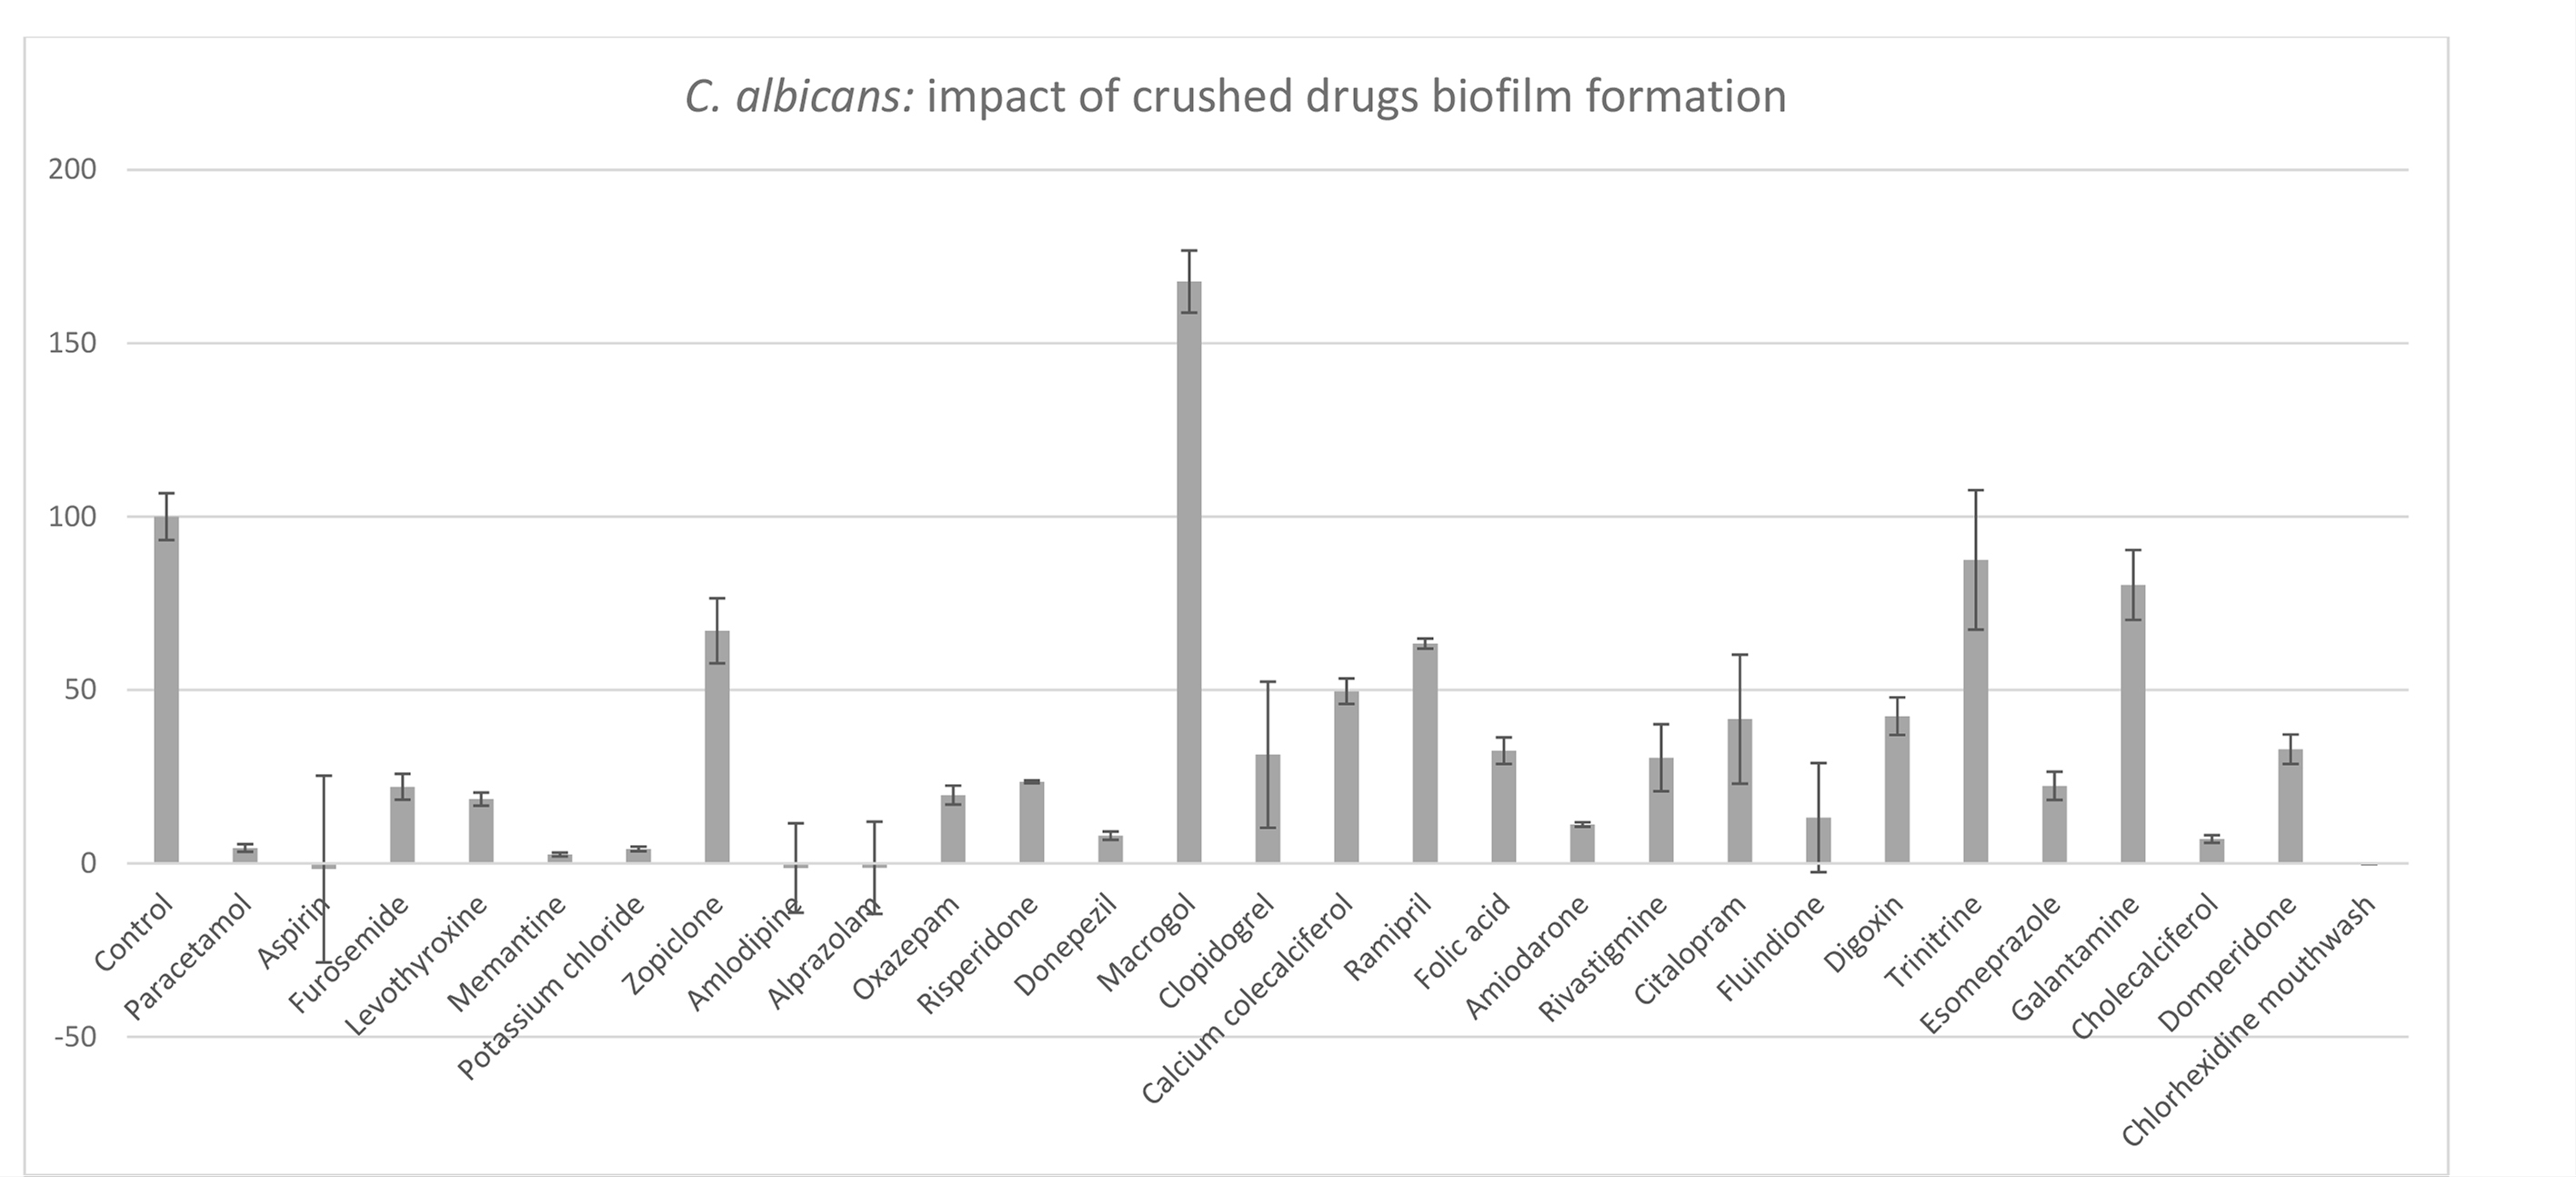 Anti-biofilm properties of drugs commonly prescribedin nursing homes: inhibition of the viability of Candida albicans in a biofilm grown for 24 hrs. Results are expressed as % viability compared to control. Control: 100% of C. albicansviability (XTT orange dye) in a biofilm grown for 24 hrs without medication.